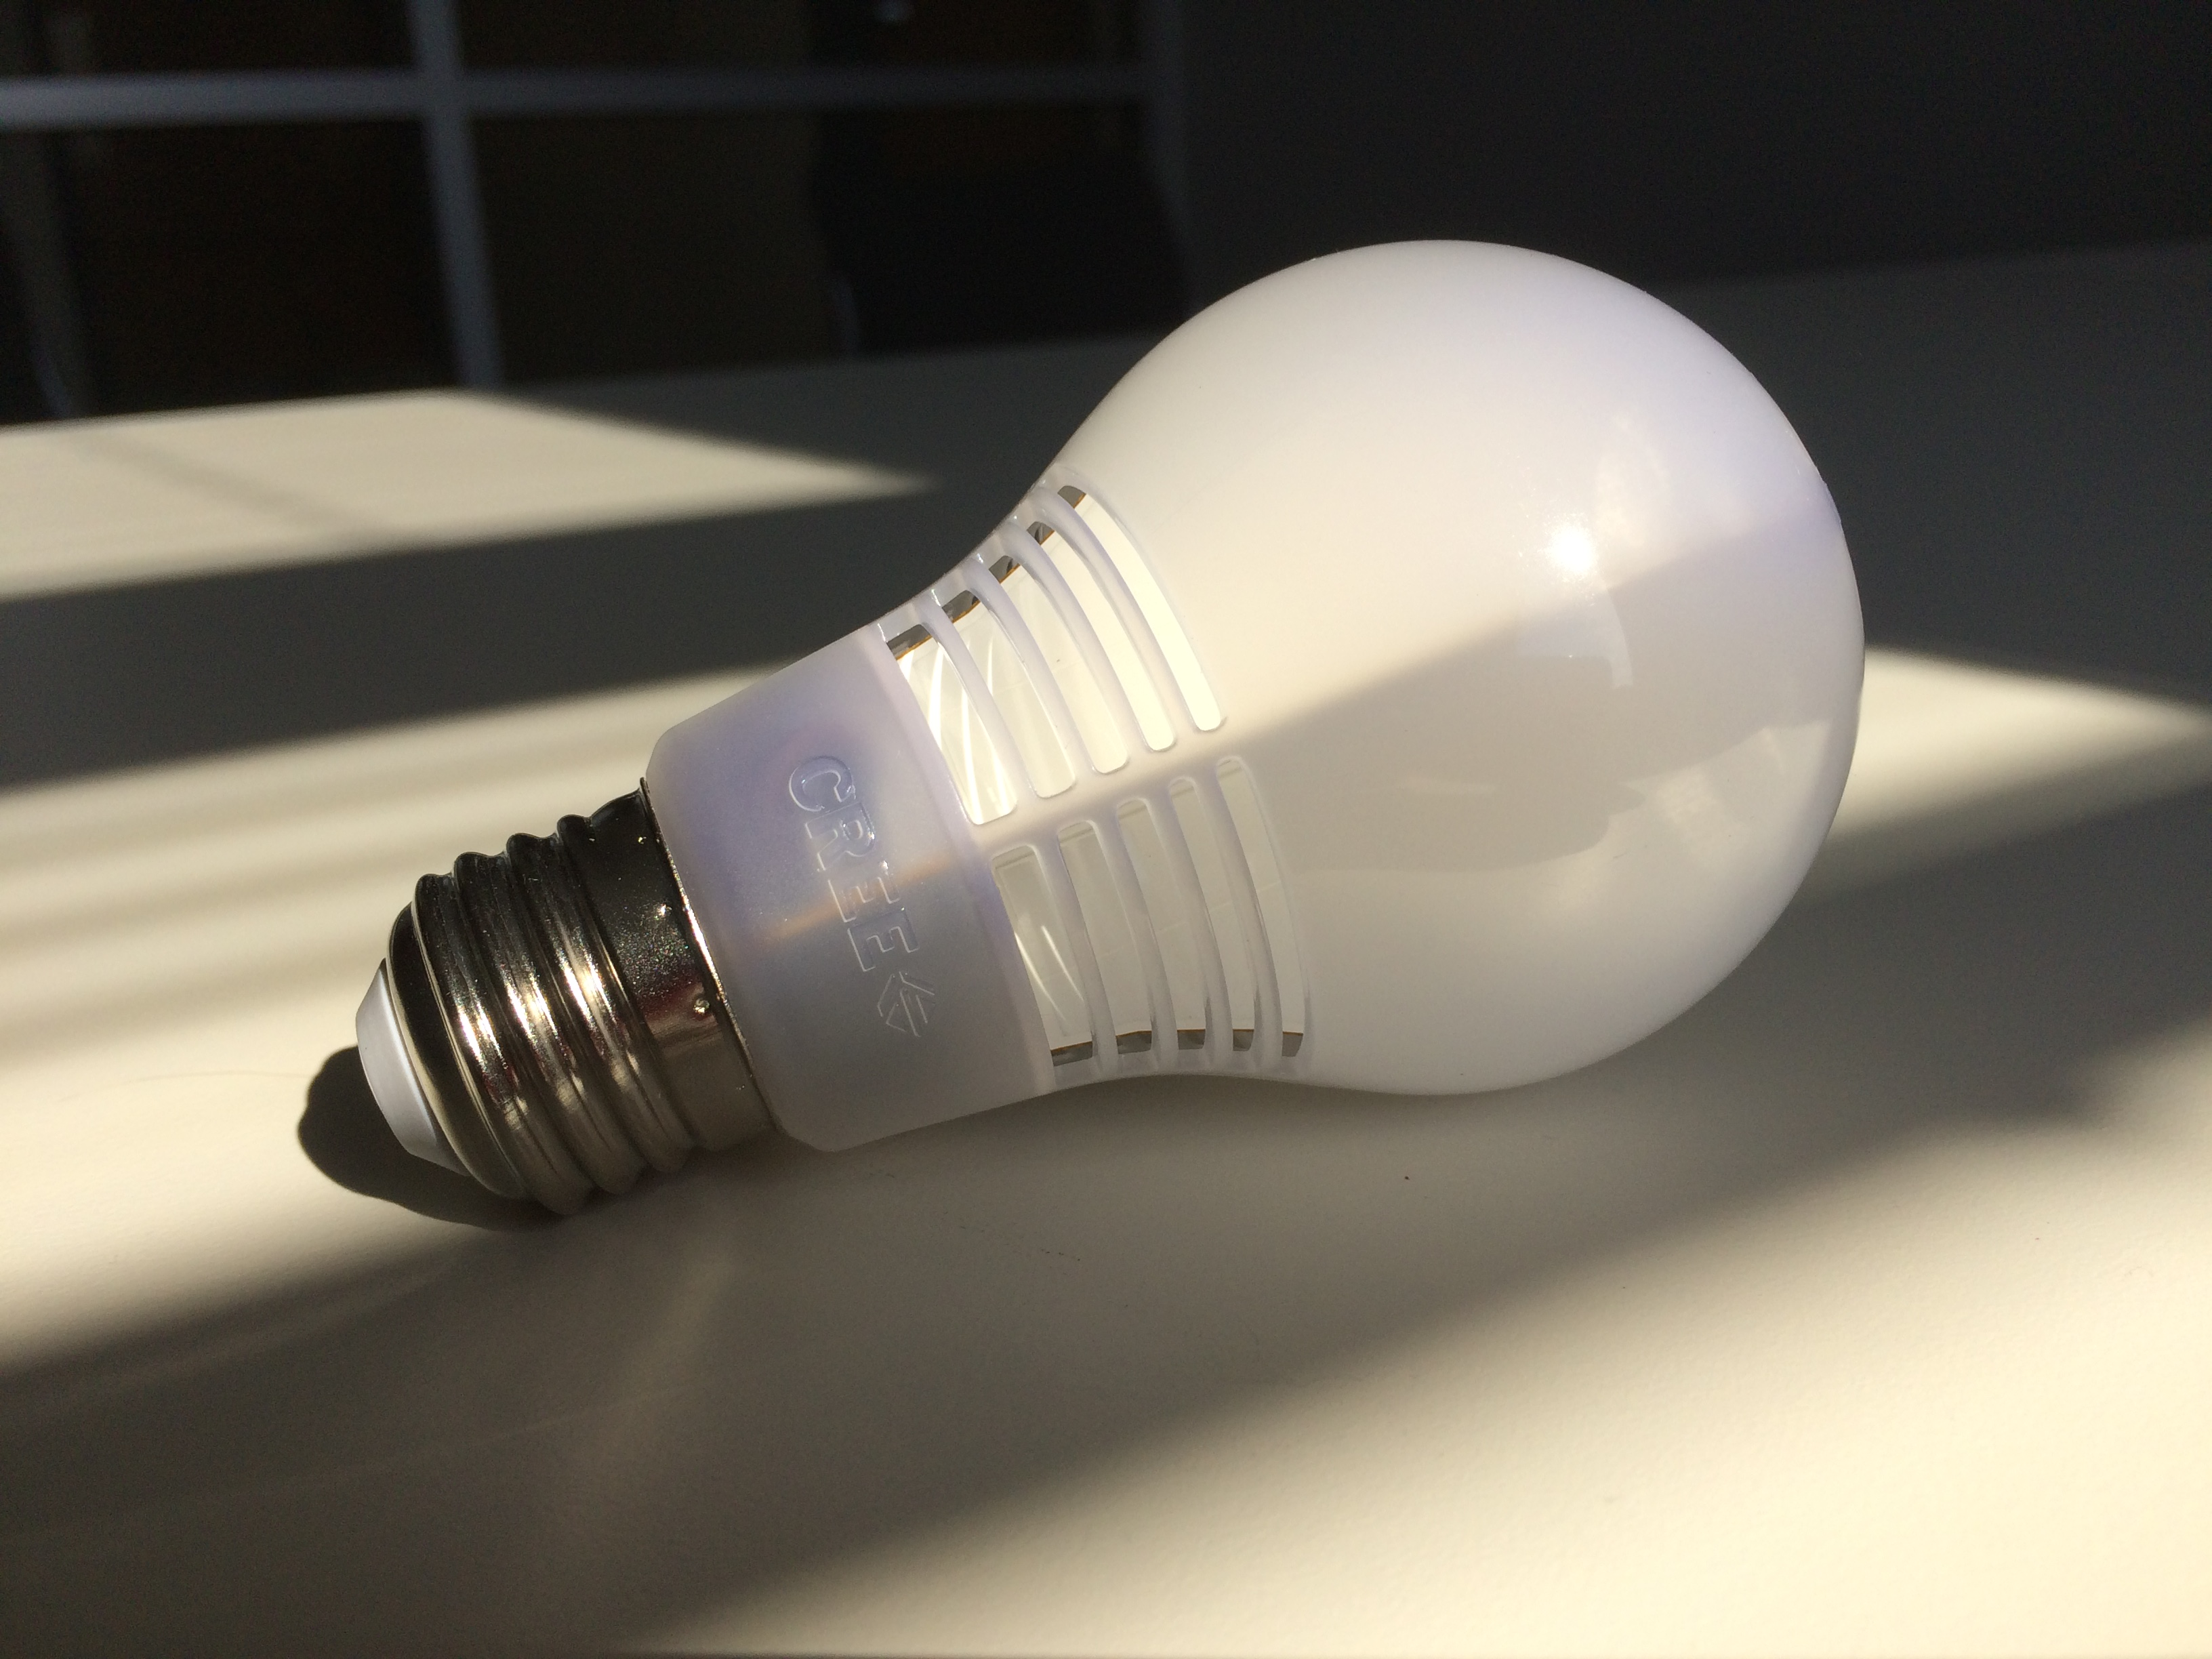 Crave giveaway 12 cree led light bulbs with incandescent style cnet Led light bulbs cost